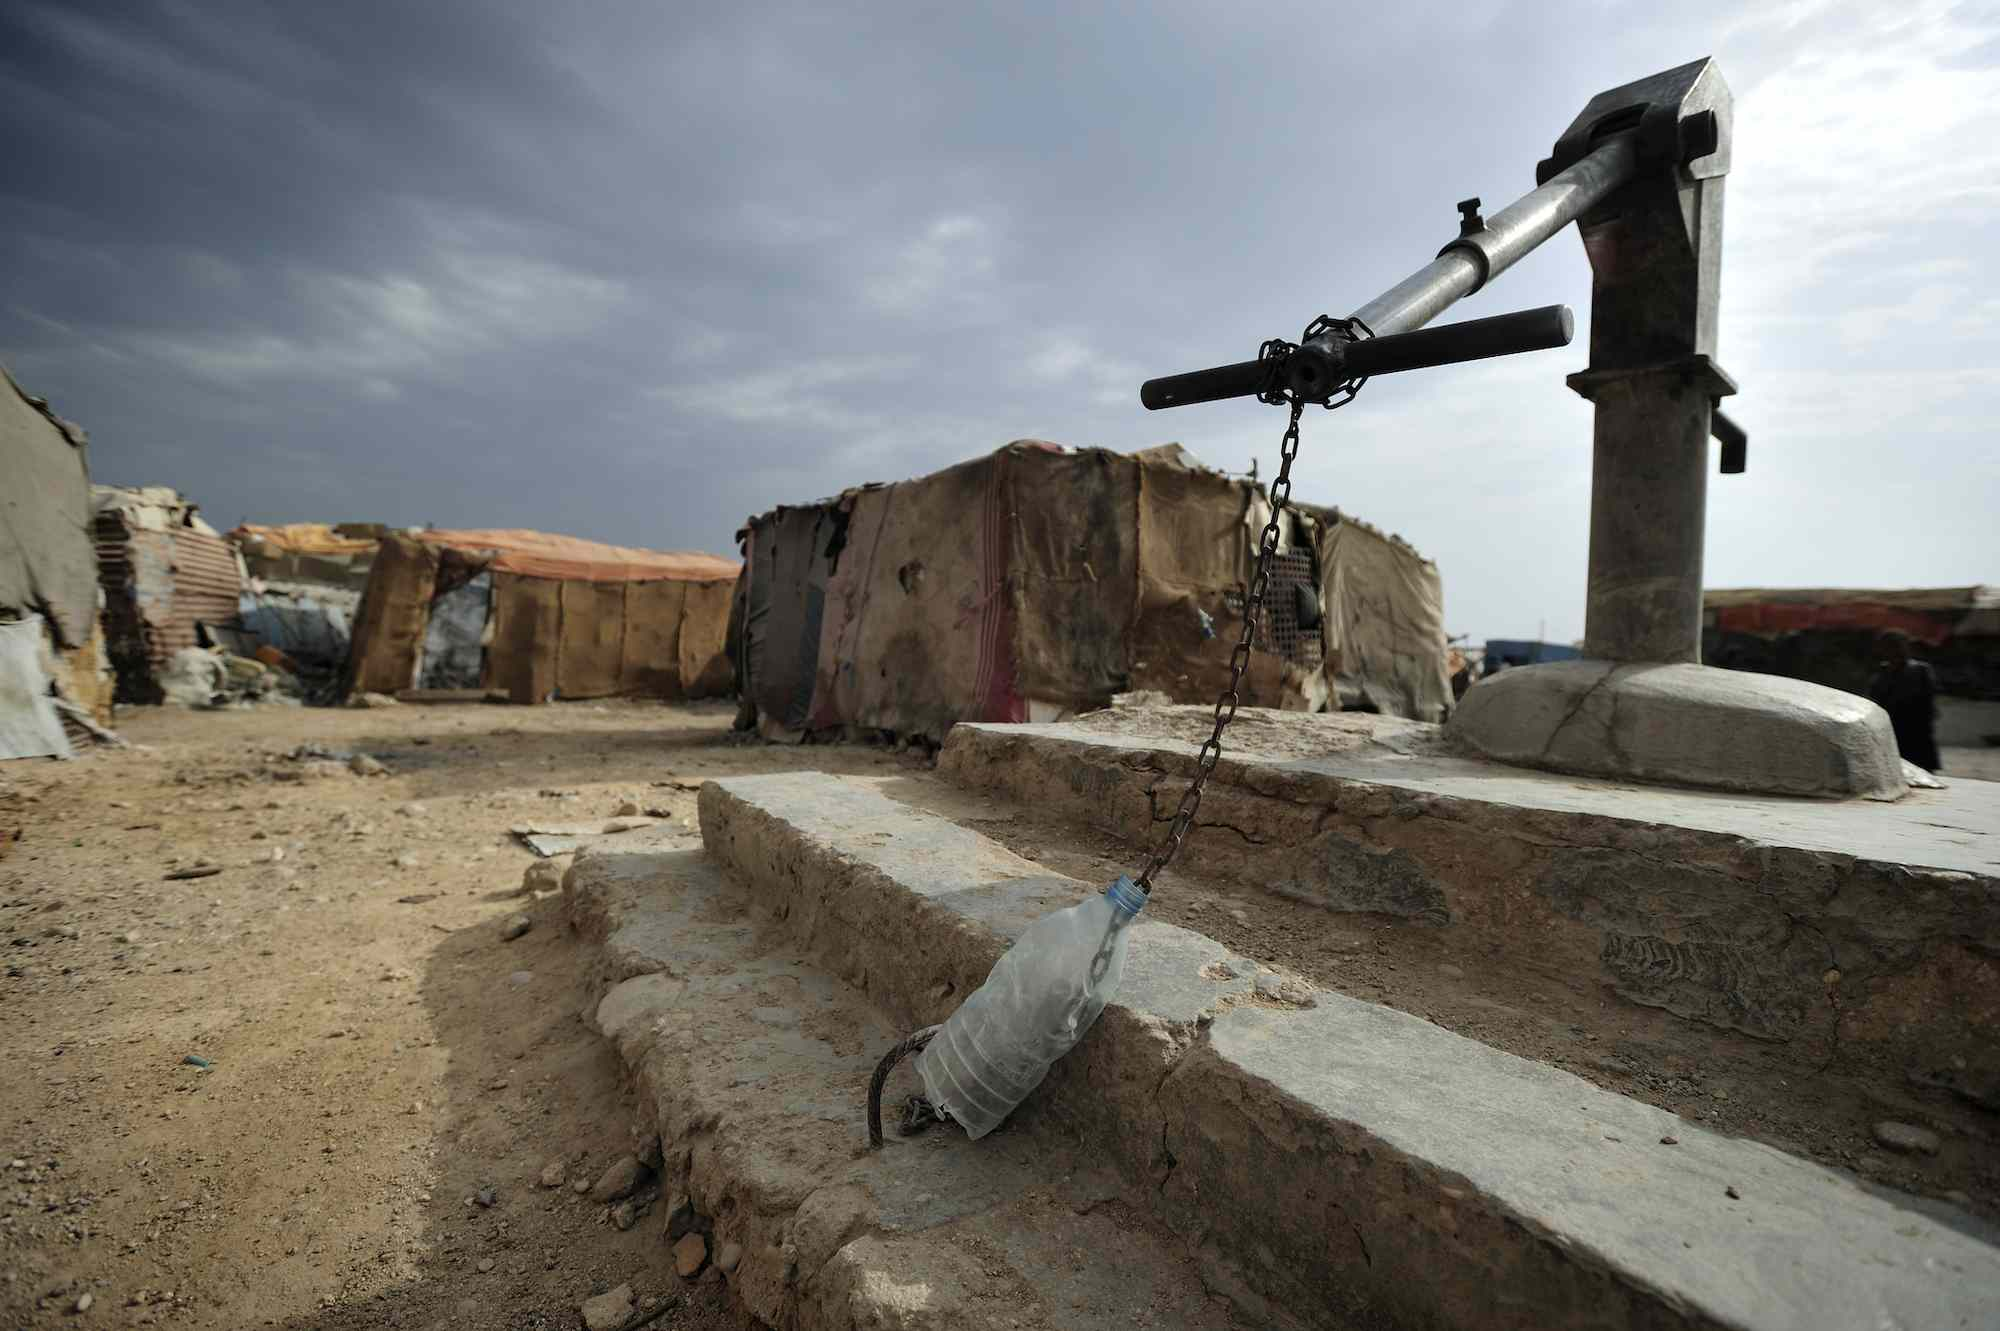 An IDP camp in Somalia's Puntland region, with a locked well where people are forced to pay for water